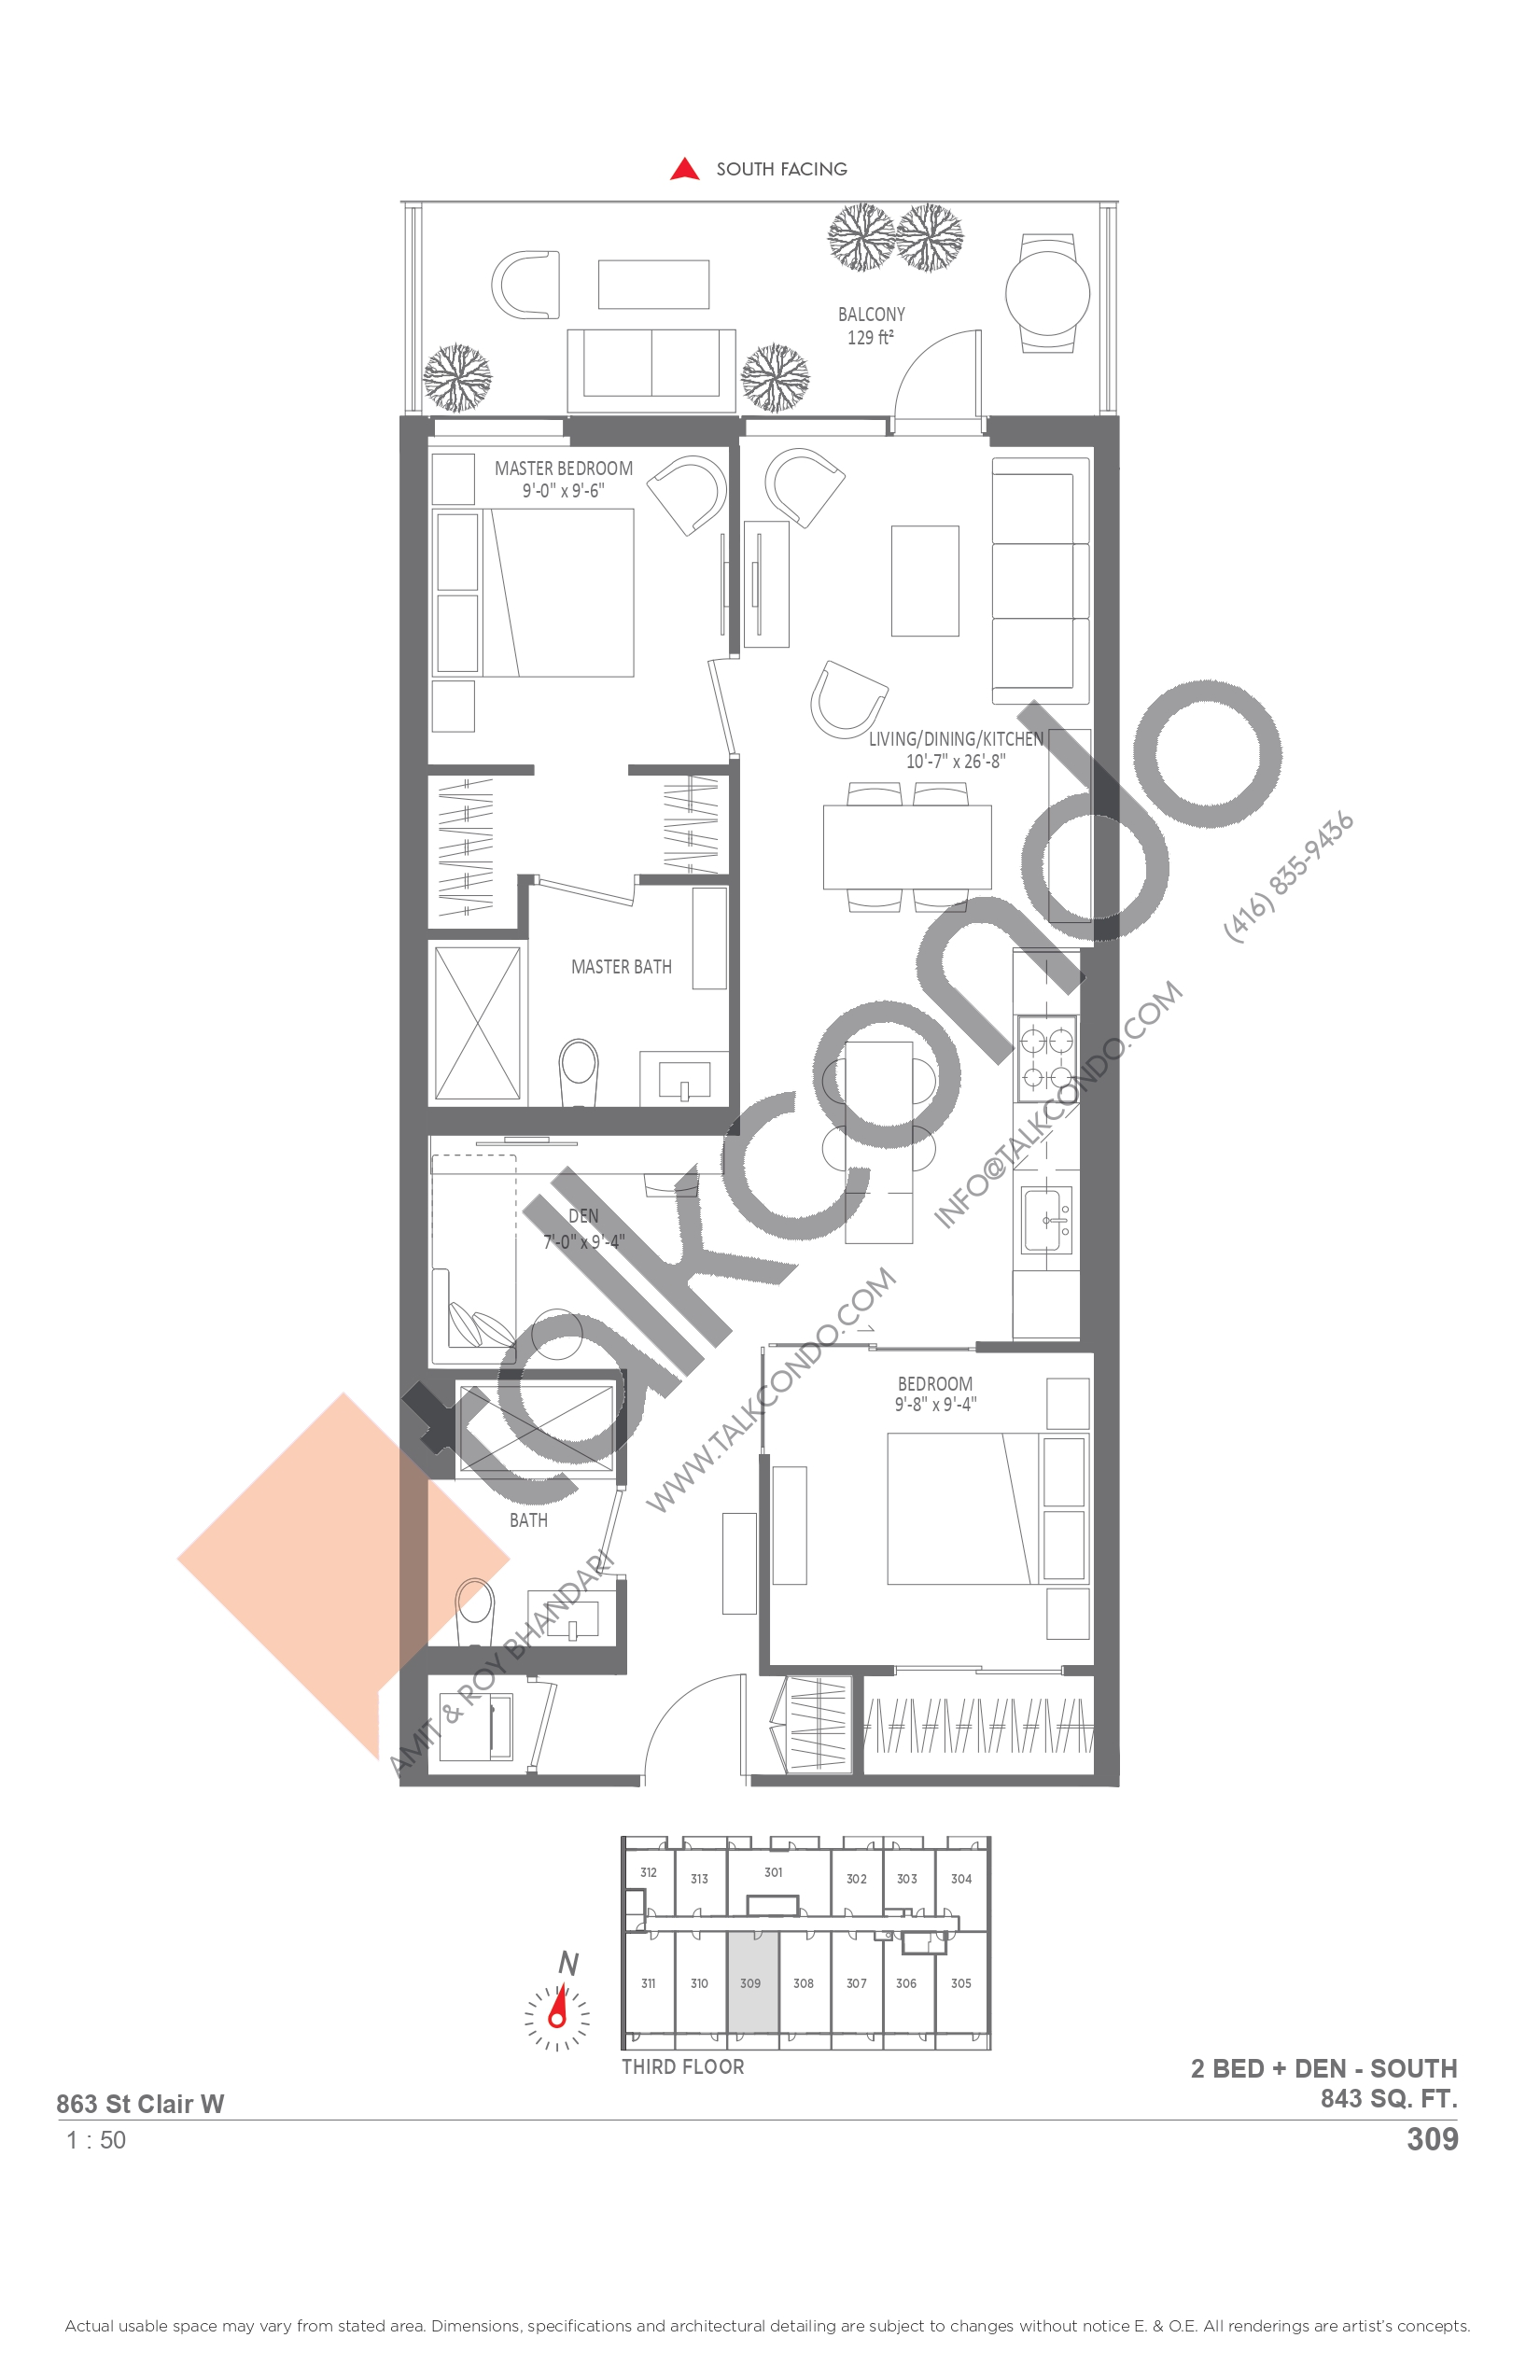 309 Floor Plan at Monza Condos - 843 sq.ft